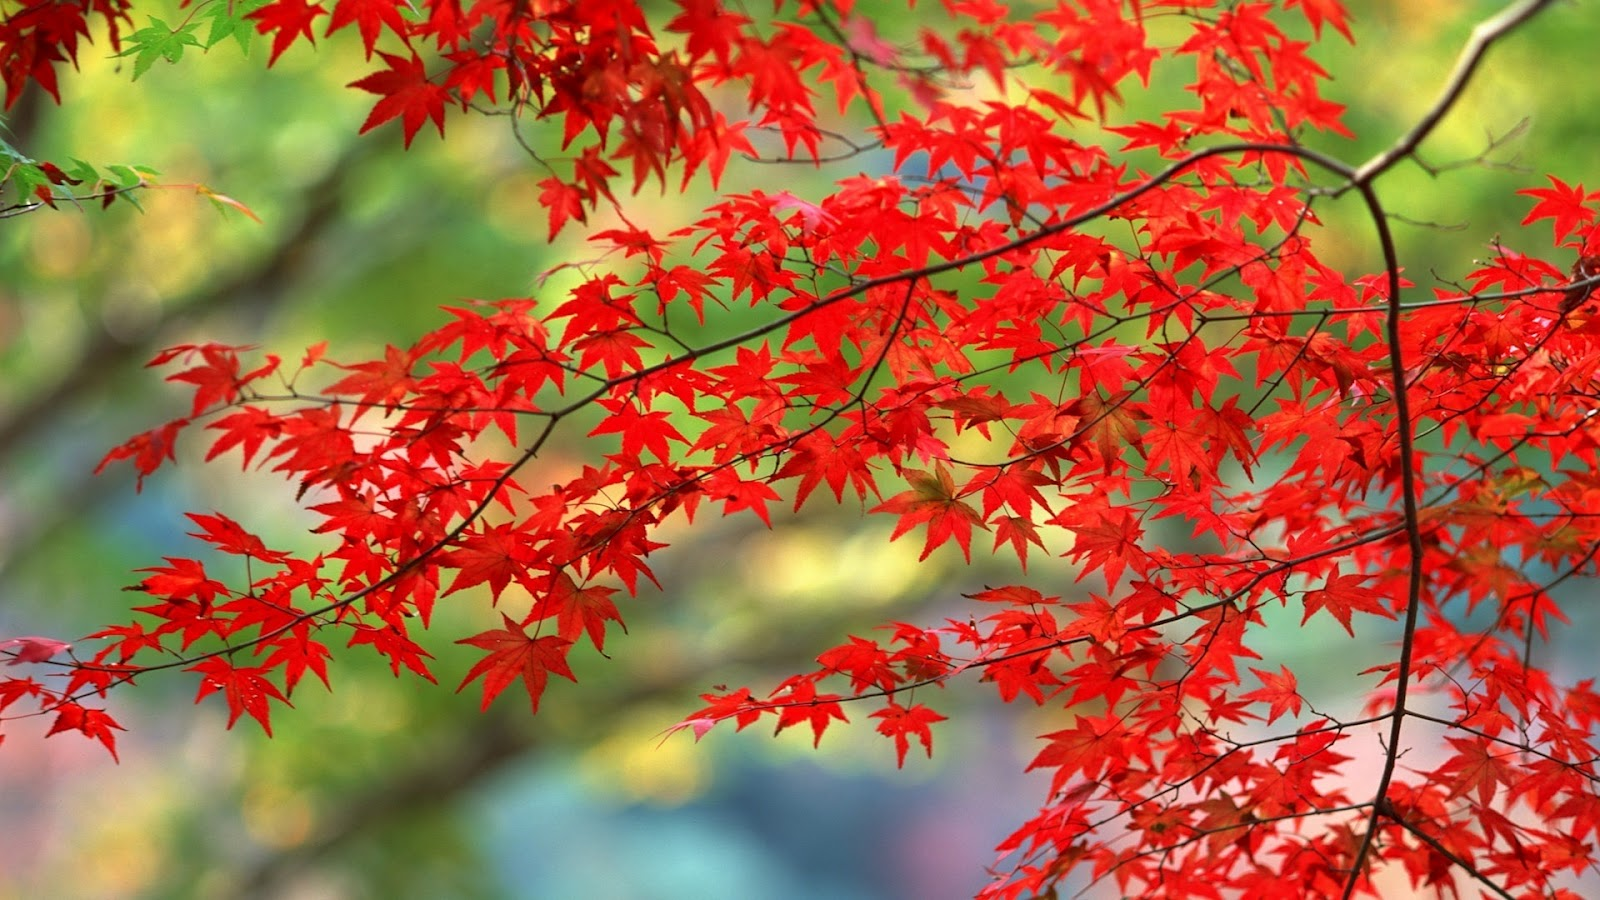 autumn leaves beautiful hd